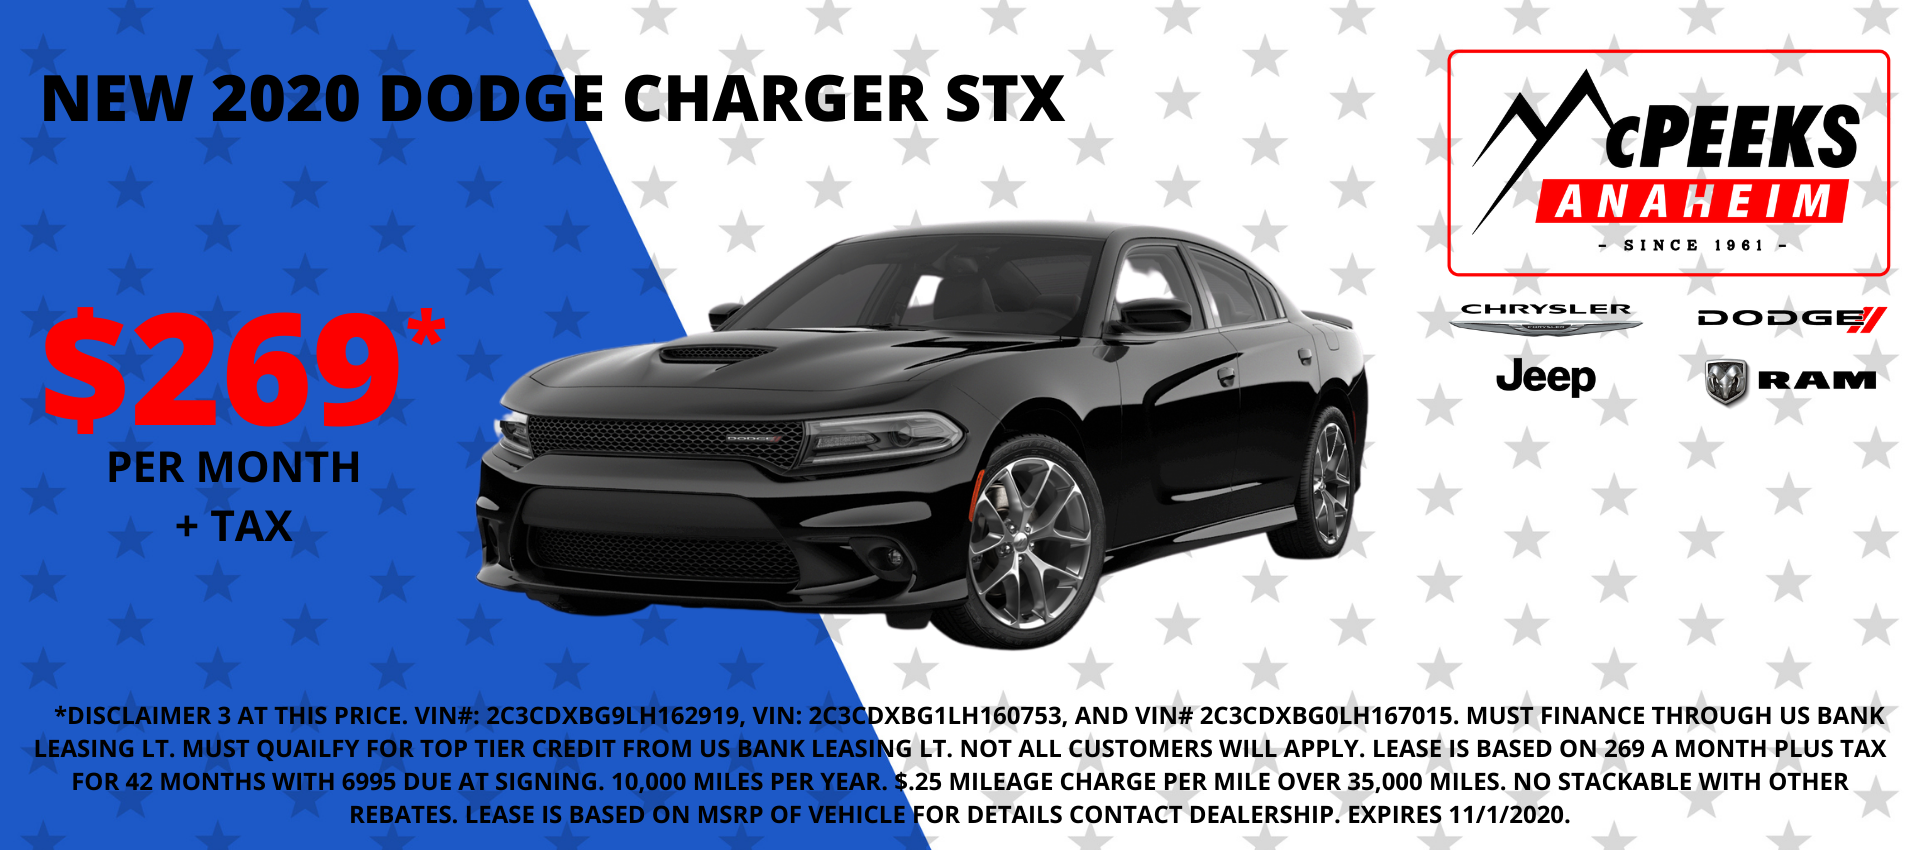 Revised Charger 10-23-2020